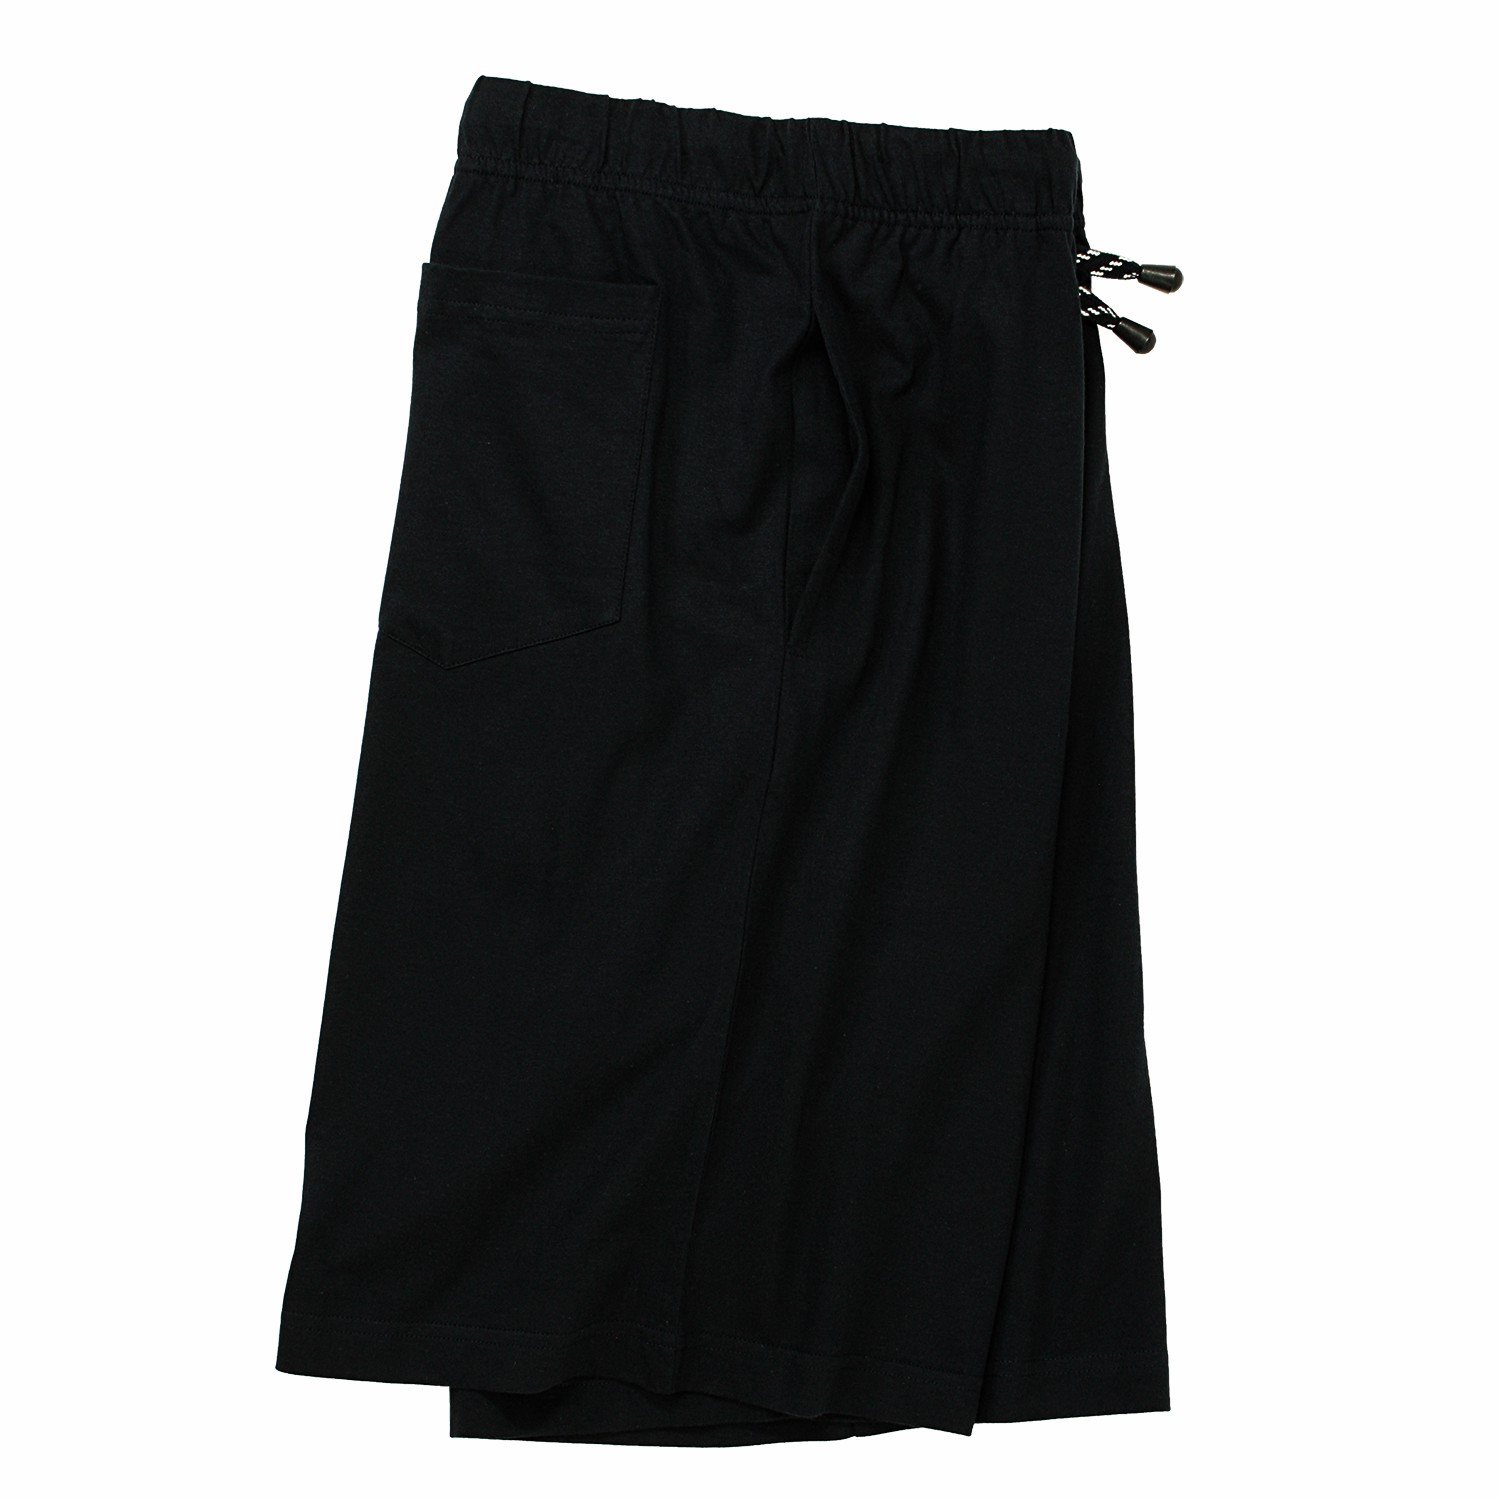 Detail Image to Short sleep pants in oversizes by ADAMO black up to 10XL